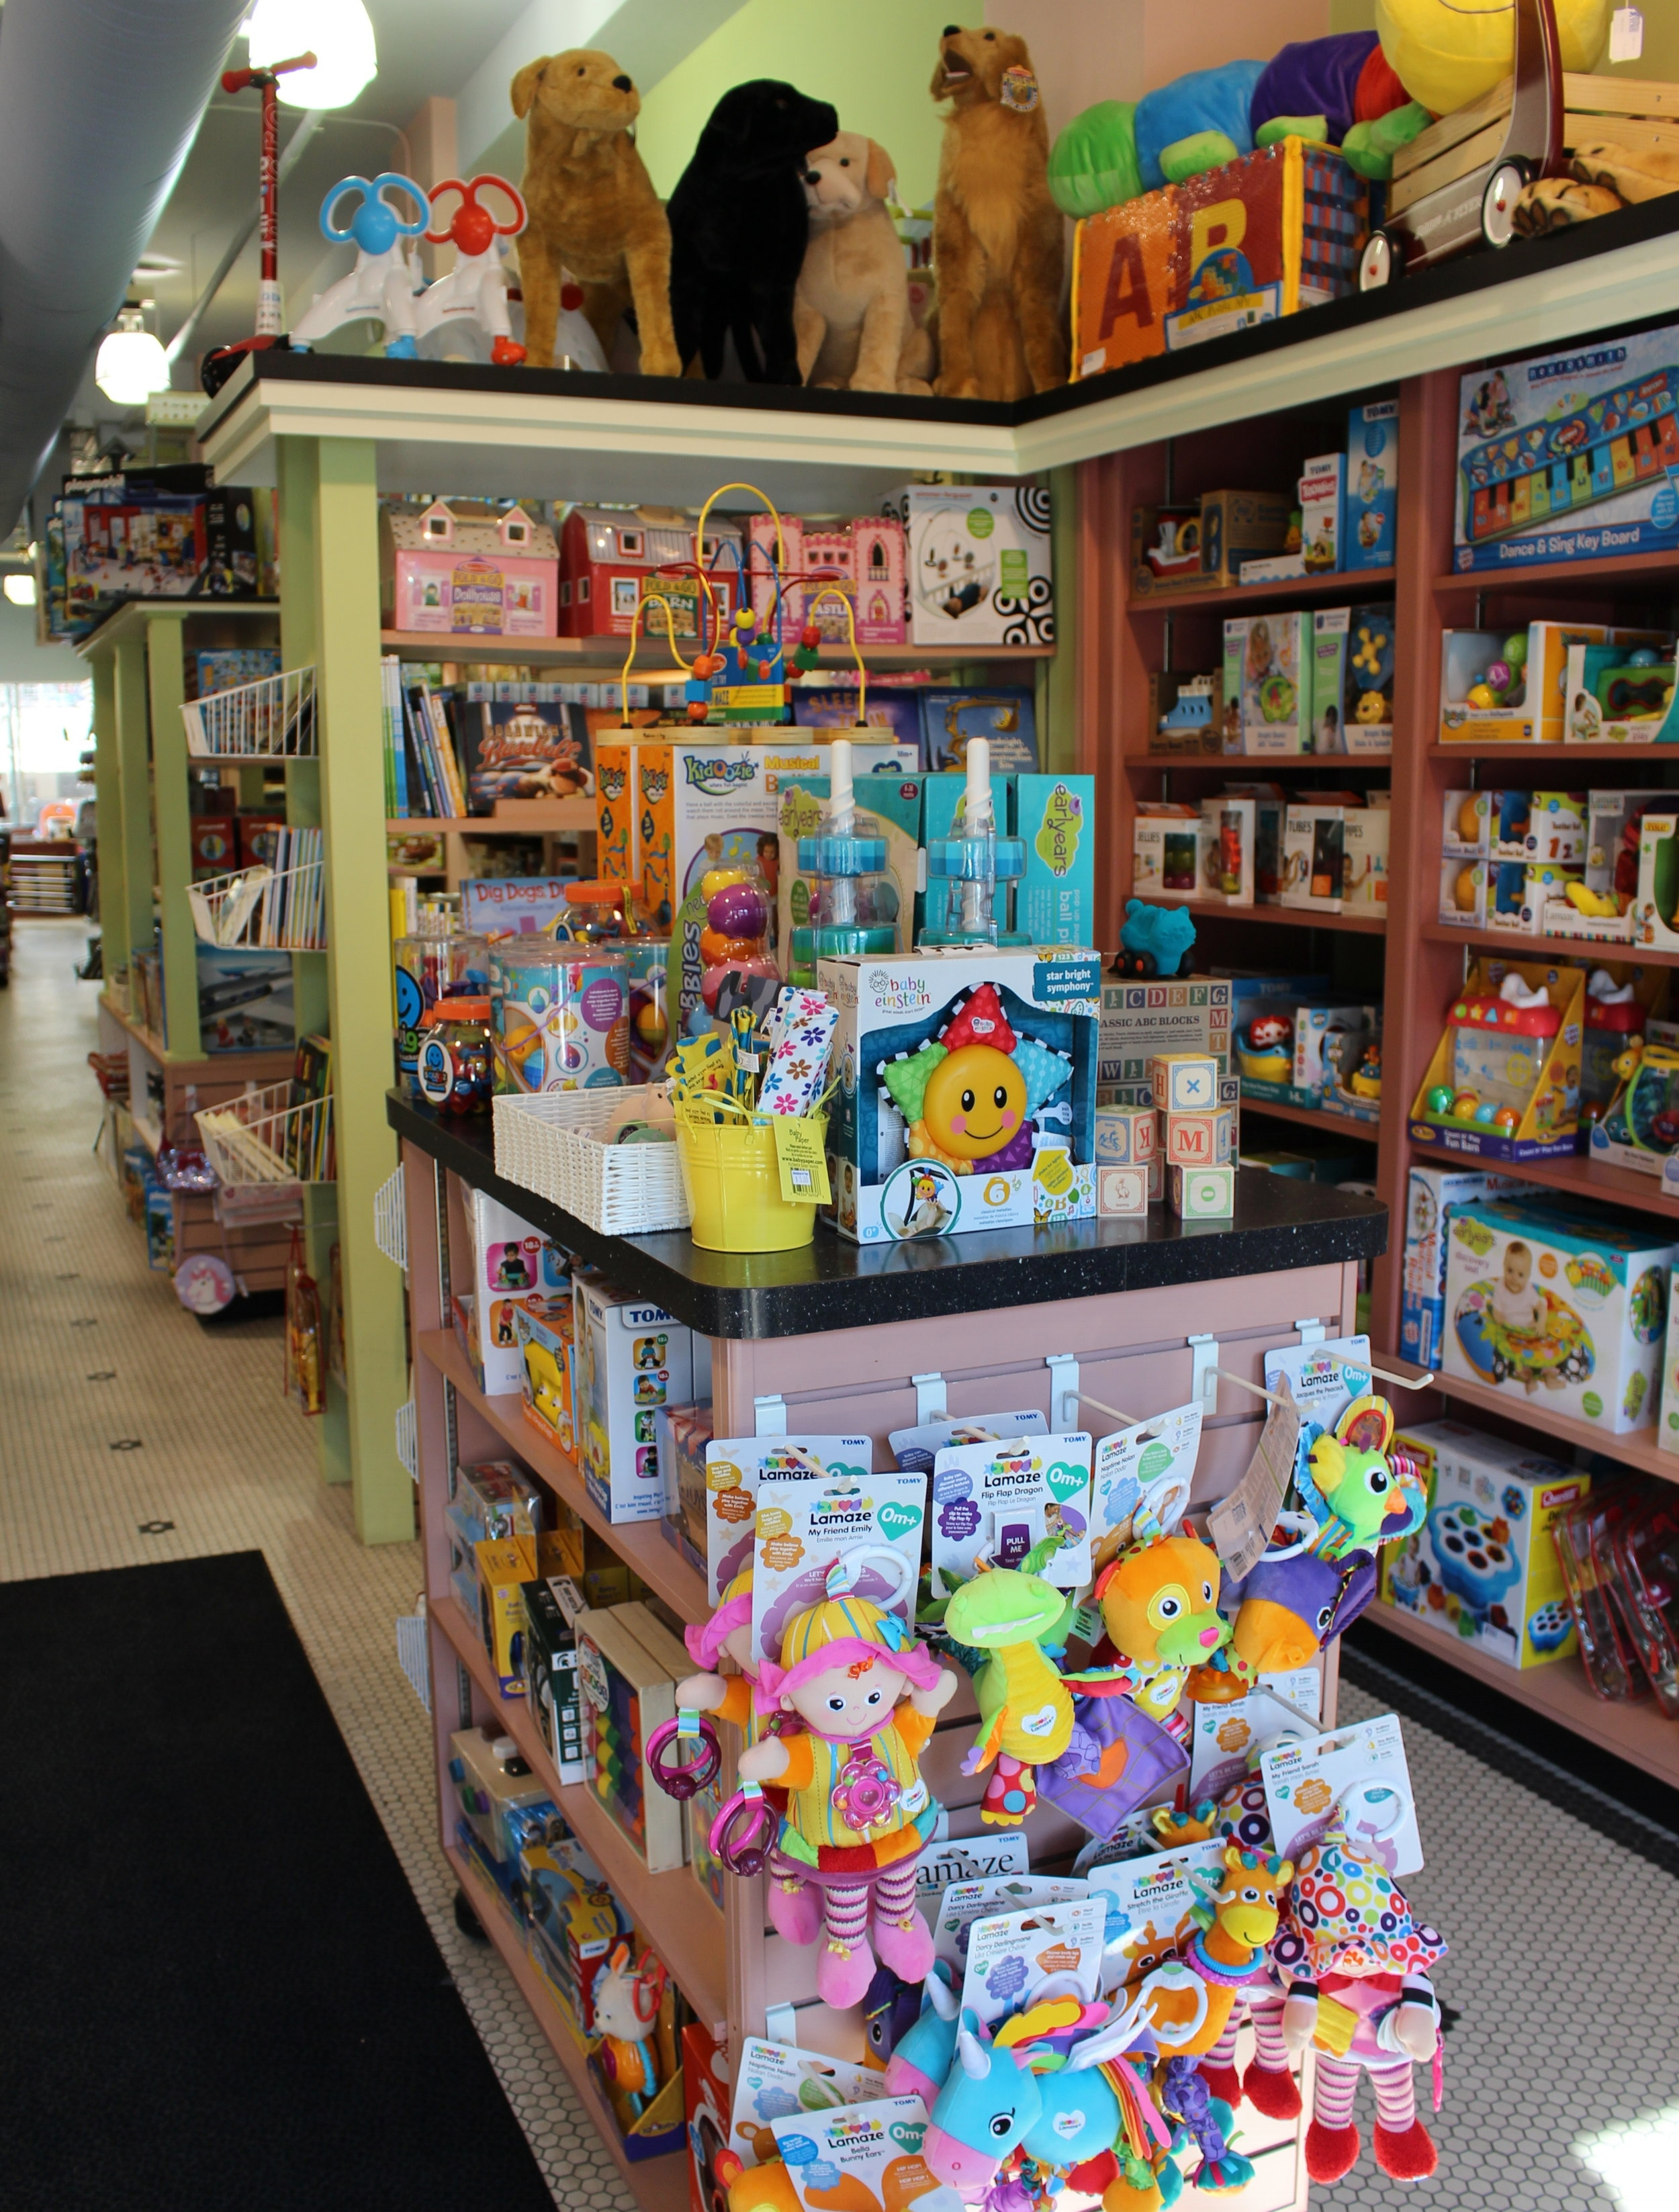 Located Conveniently in Downtown Birmingham - Our store's prime location on Maple makes it easy for you to find all your kids' favorite toys in one place. With in-store wrapping and advance ordering, we aim to provide the best toy shopping experience in the Metro Detroit area!Learn more ➝